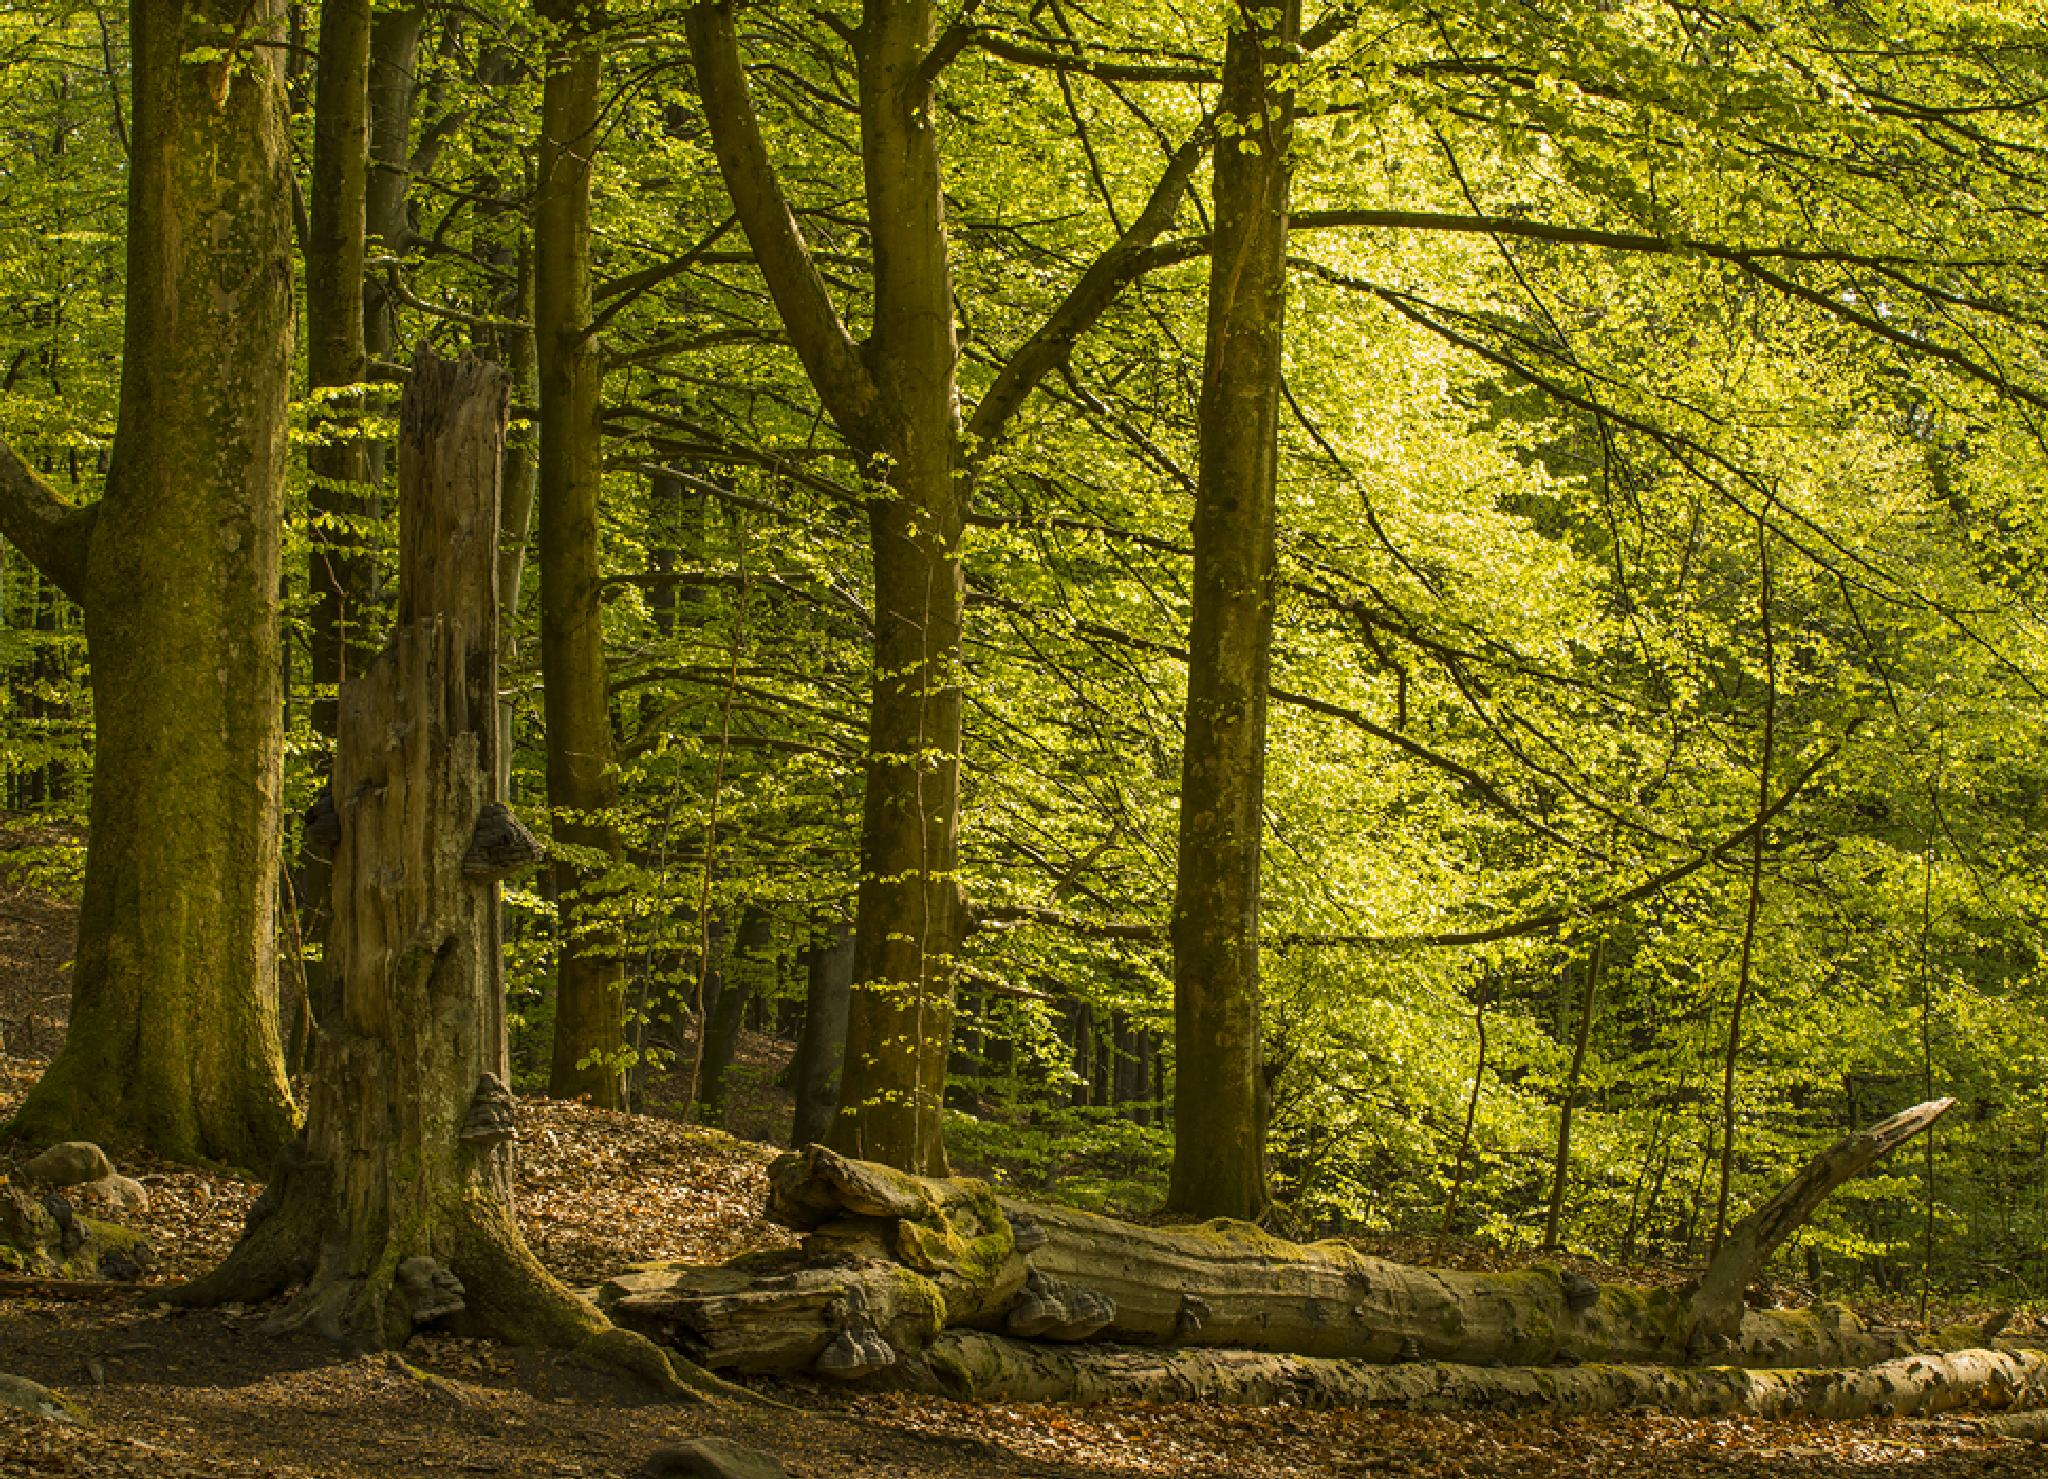 Springtime in the forest by Peter Samuelsson